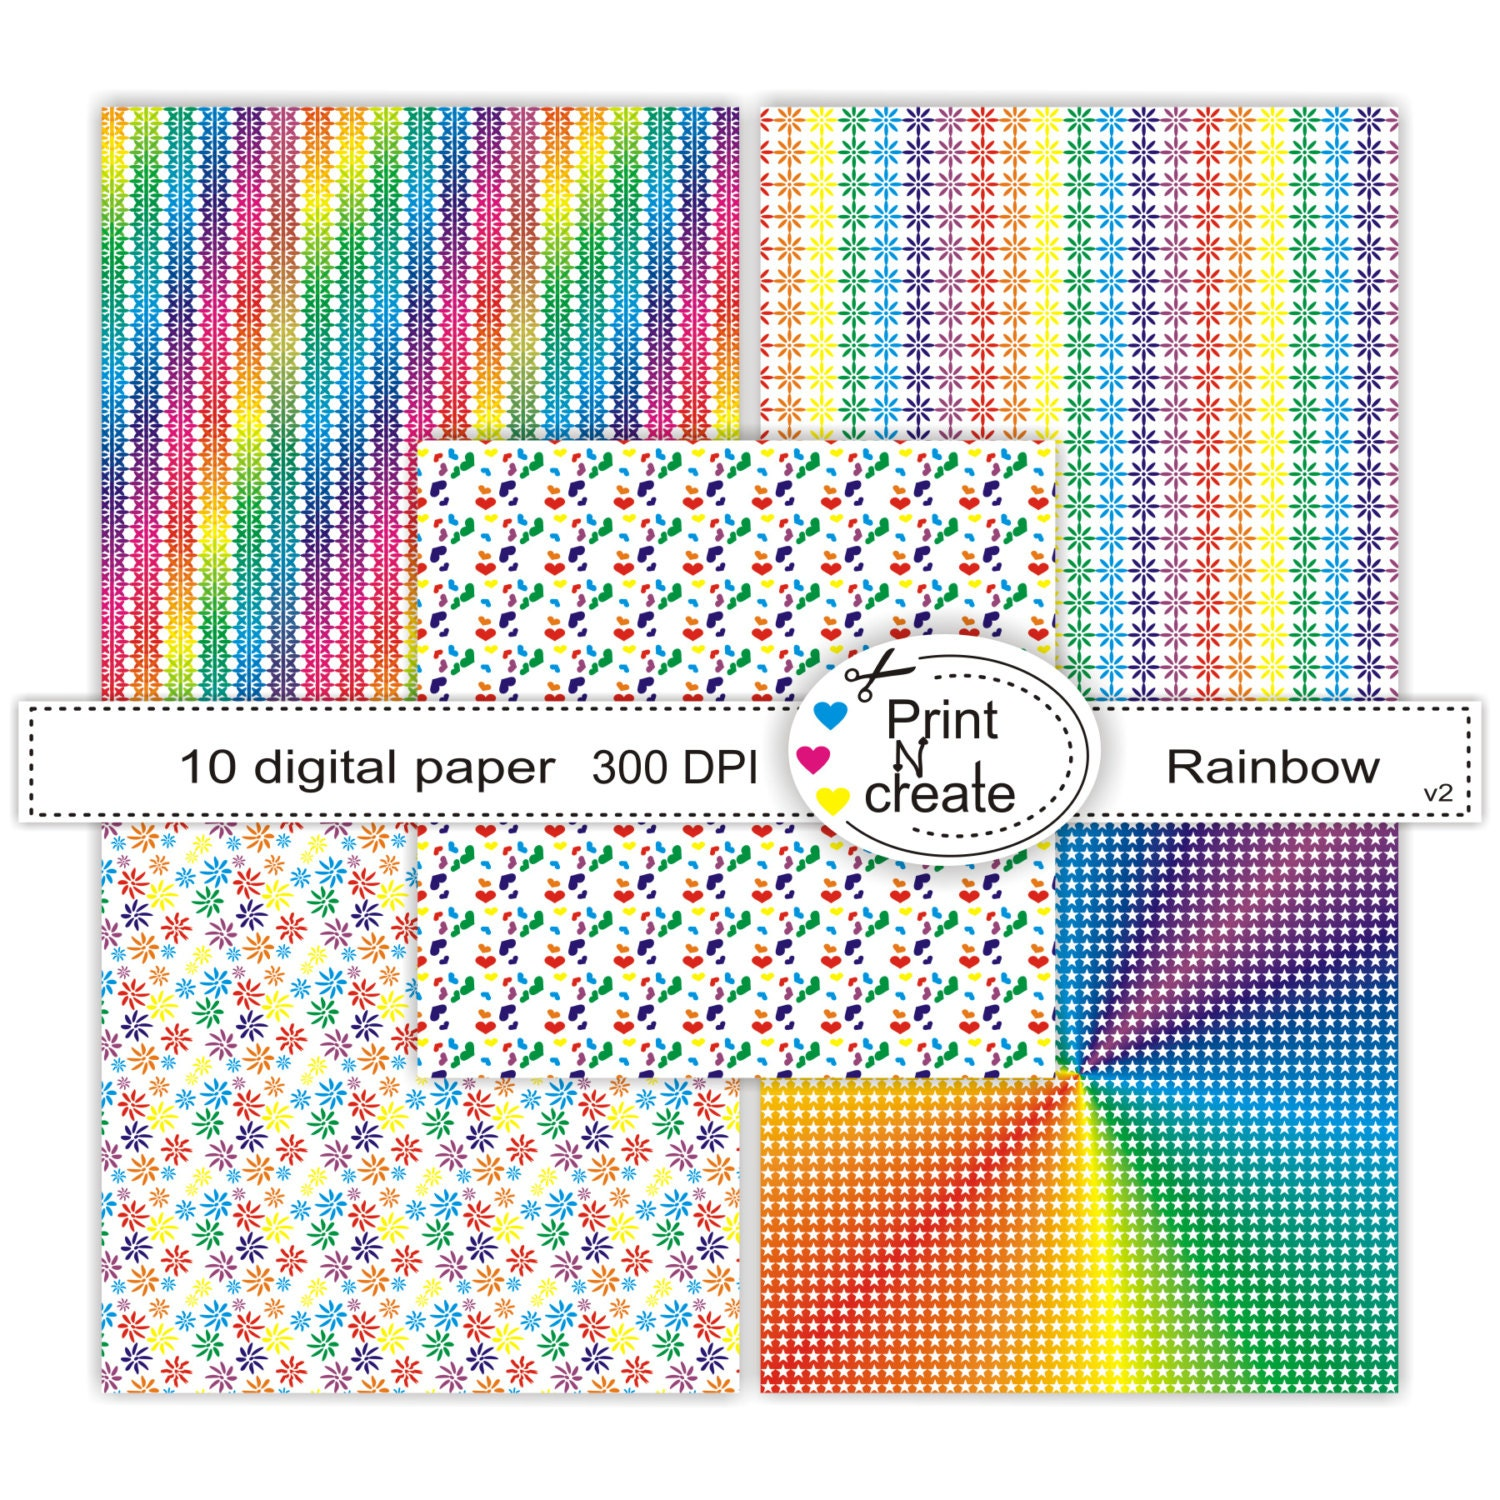 Scrapbook paper pads - This Is A Digital File